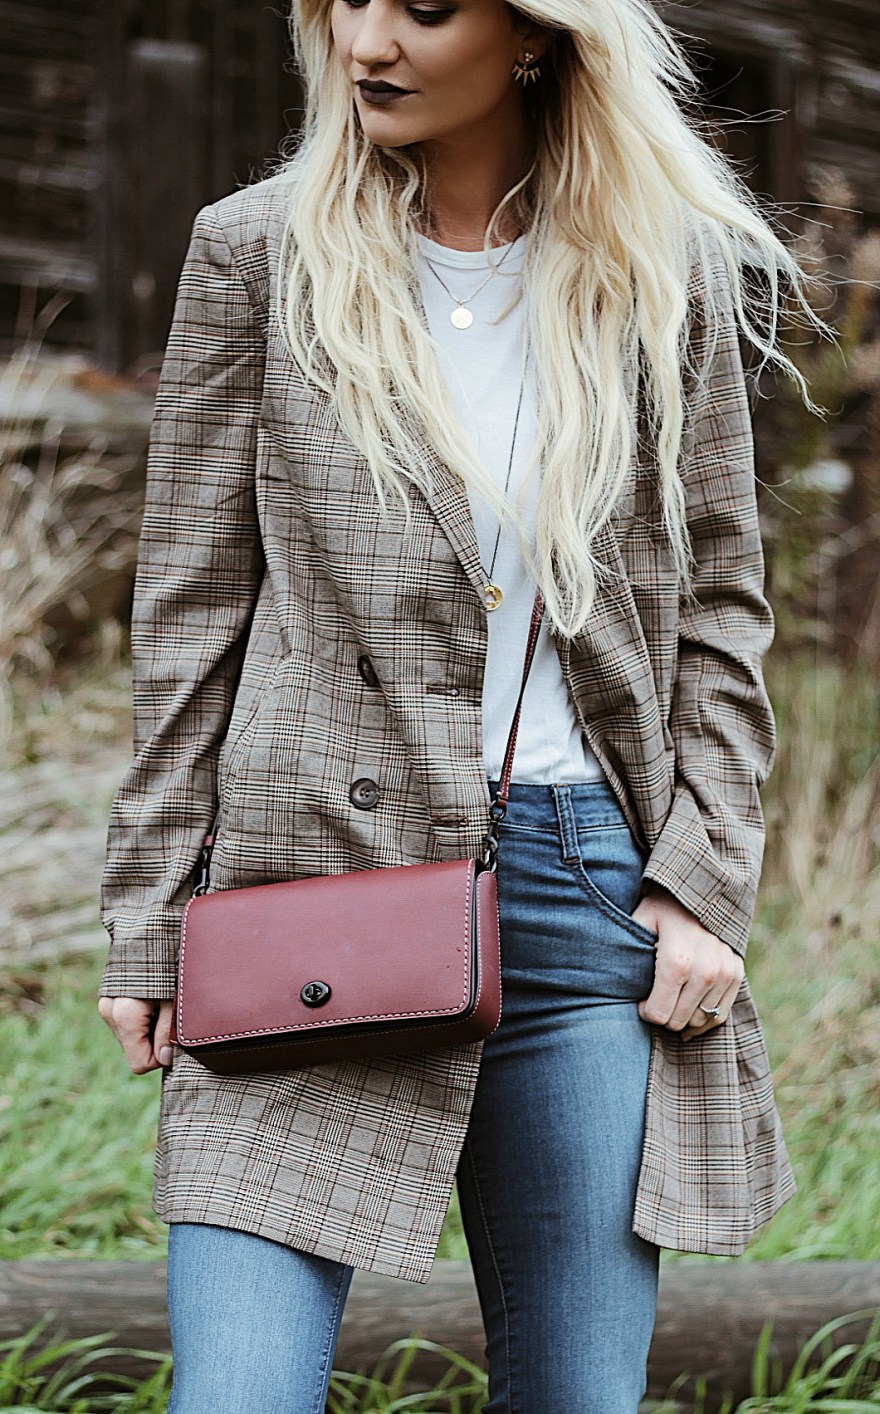 plaid jacket, coach purse, coach, dinky bag, how to wear, outfit, Burgundy purse, ootd, outfit inpso, outfit inspiration, outfit ideas, fall outfit, fall style, fall fashion, fall trends, fall trends 2017, blonde hair, blonde melt, fashion blogger, beauty blogger, the noms niche, Las Vegas beauty blogger, flare jeans, Lindsey Simon